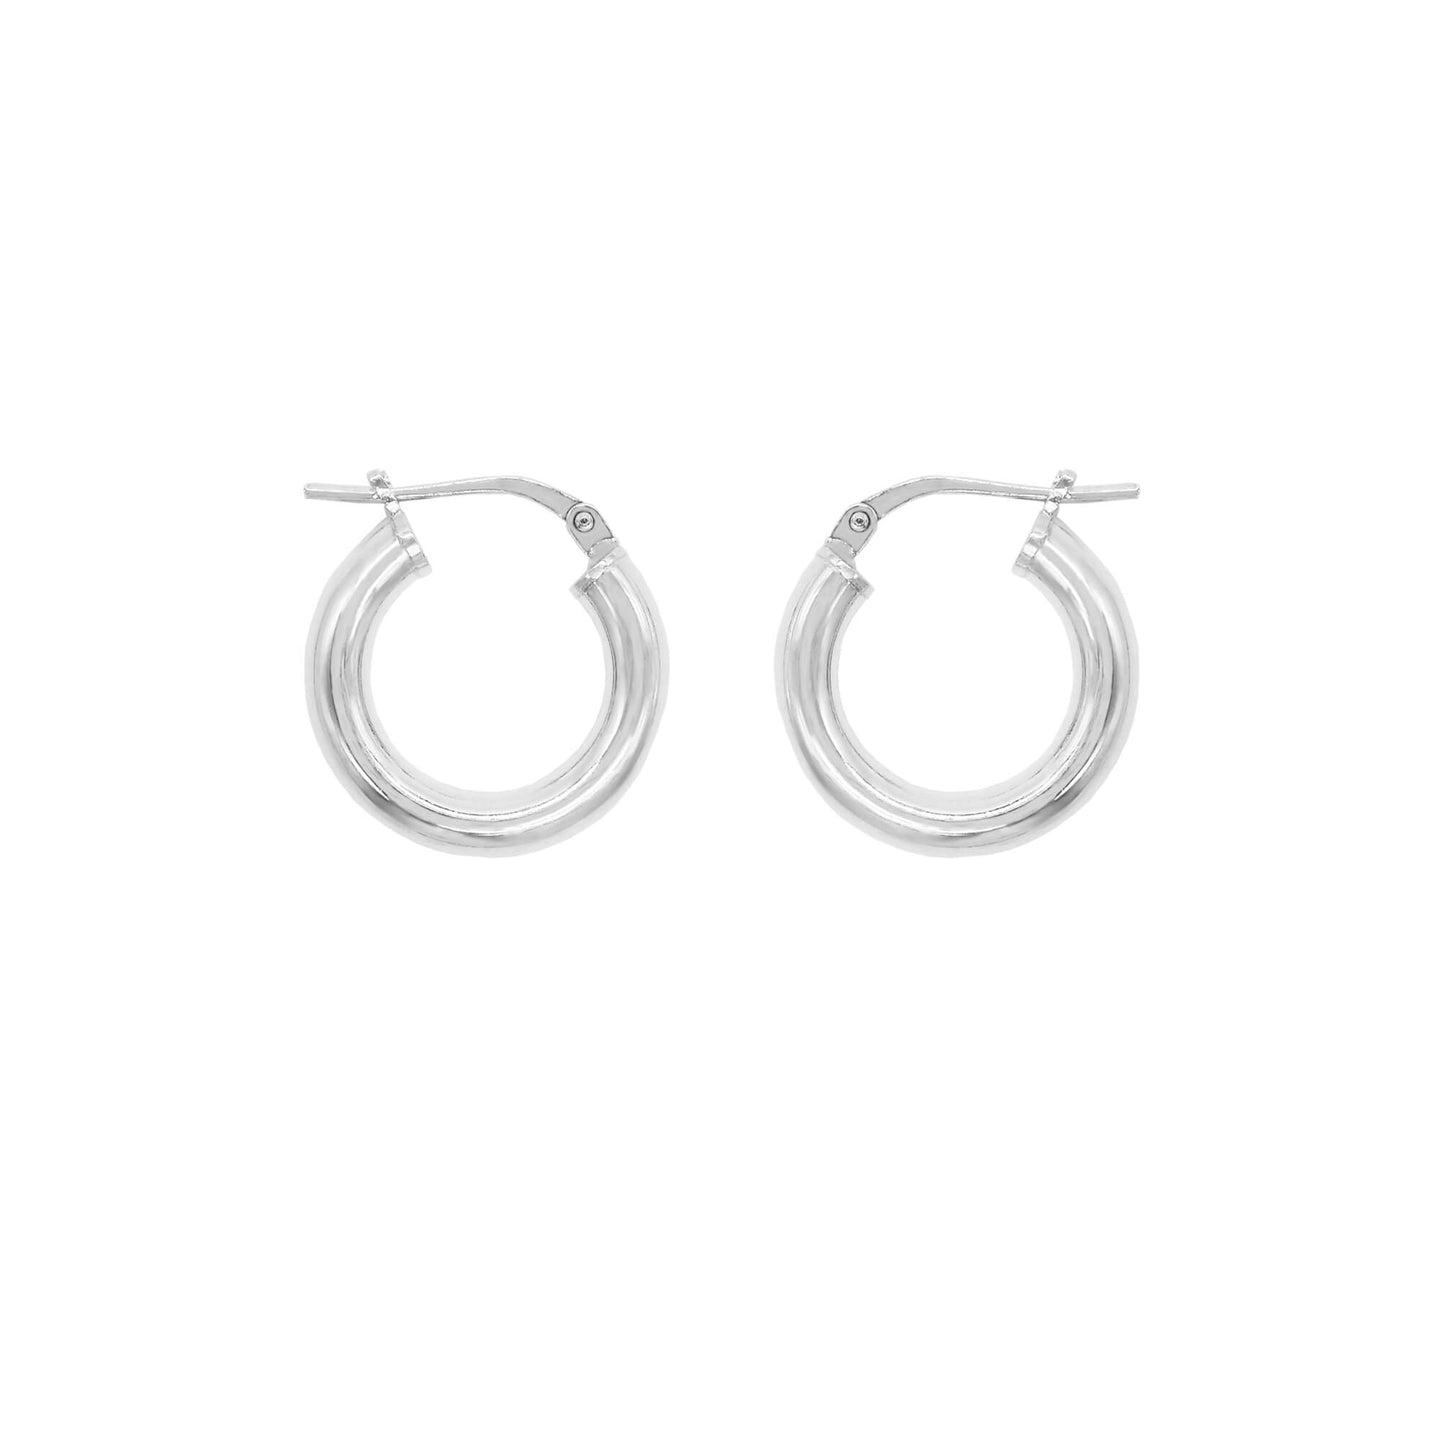 Pair of sterling silver round small tube hoop earrings with pin lever fastening. White background.